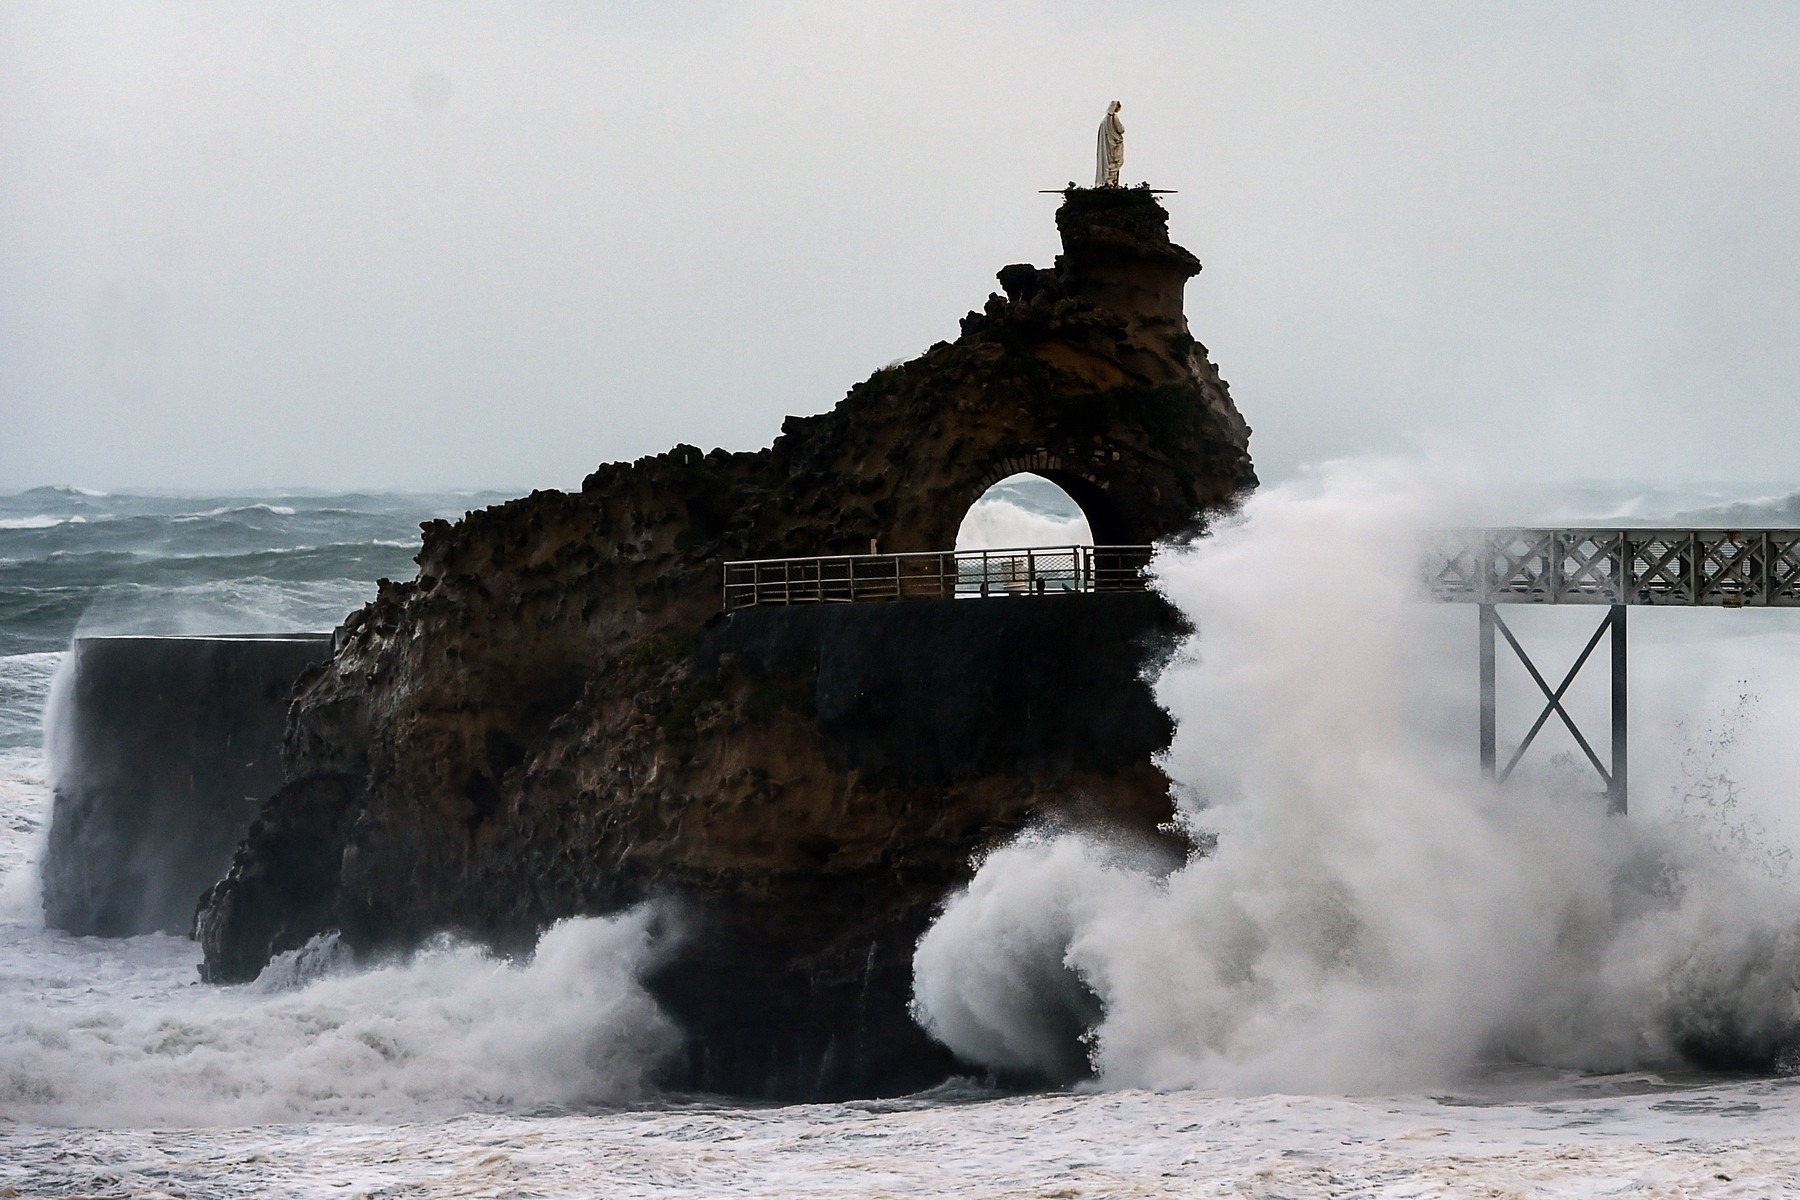 Waves break on the Rocher de La Vierge off the coast in Biarritz, south western France, on November 3, 2019 during the Amelie storm.  Some 100,000 households were deprived of electricity on the morning of November 3, 2019 in south western France, where the Atlantic coast was swept by storm Amelie, causing damage but no casualties, according to an initial assessment by the emergency services and the prefectures., Image: 480832402, License: Rights-managed, Restrictions: , Model Release: no, Credit line: GAIZKA IROZ / AFP / Profimedia